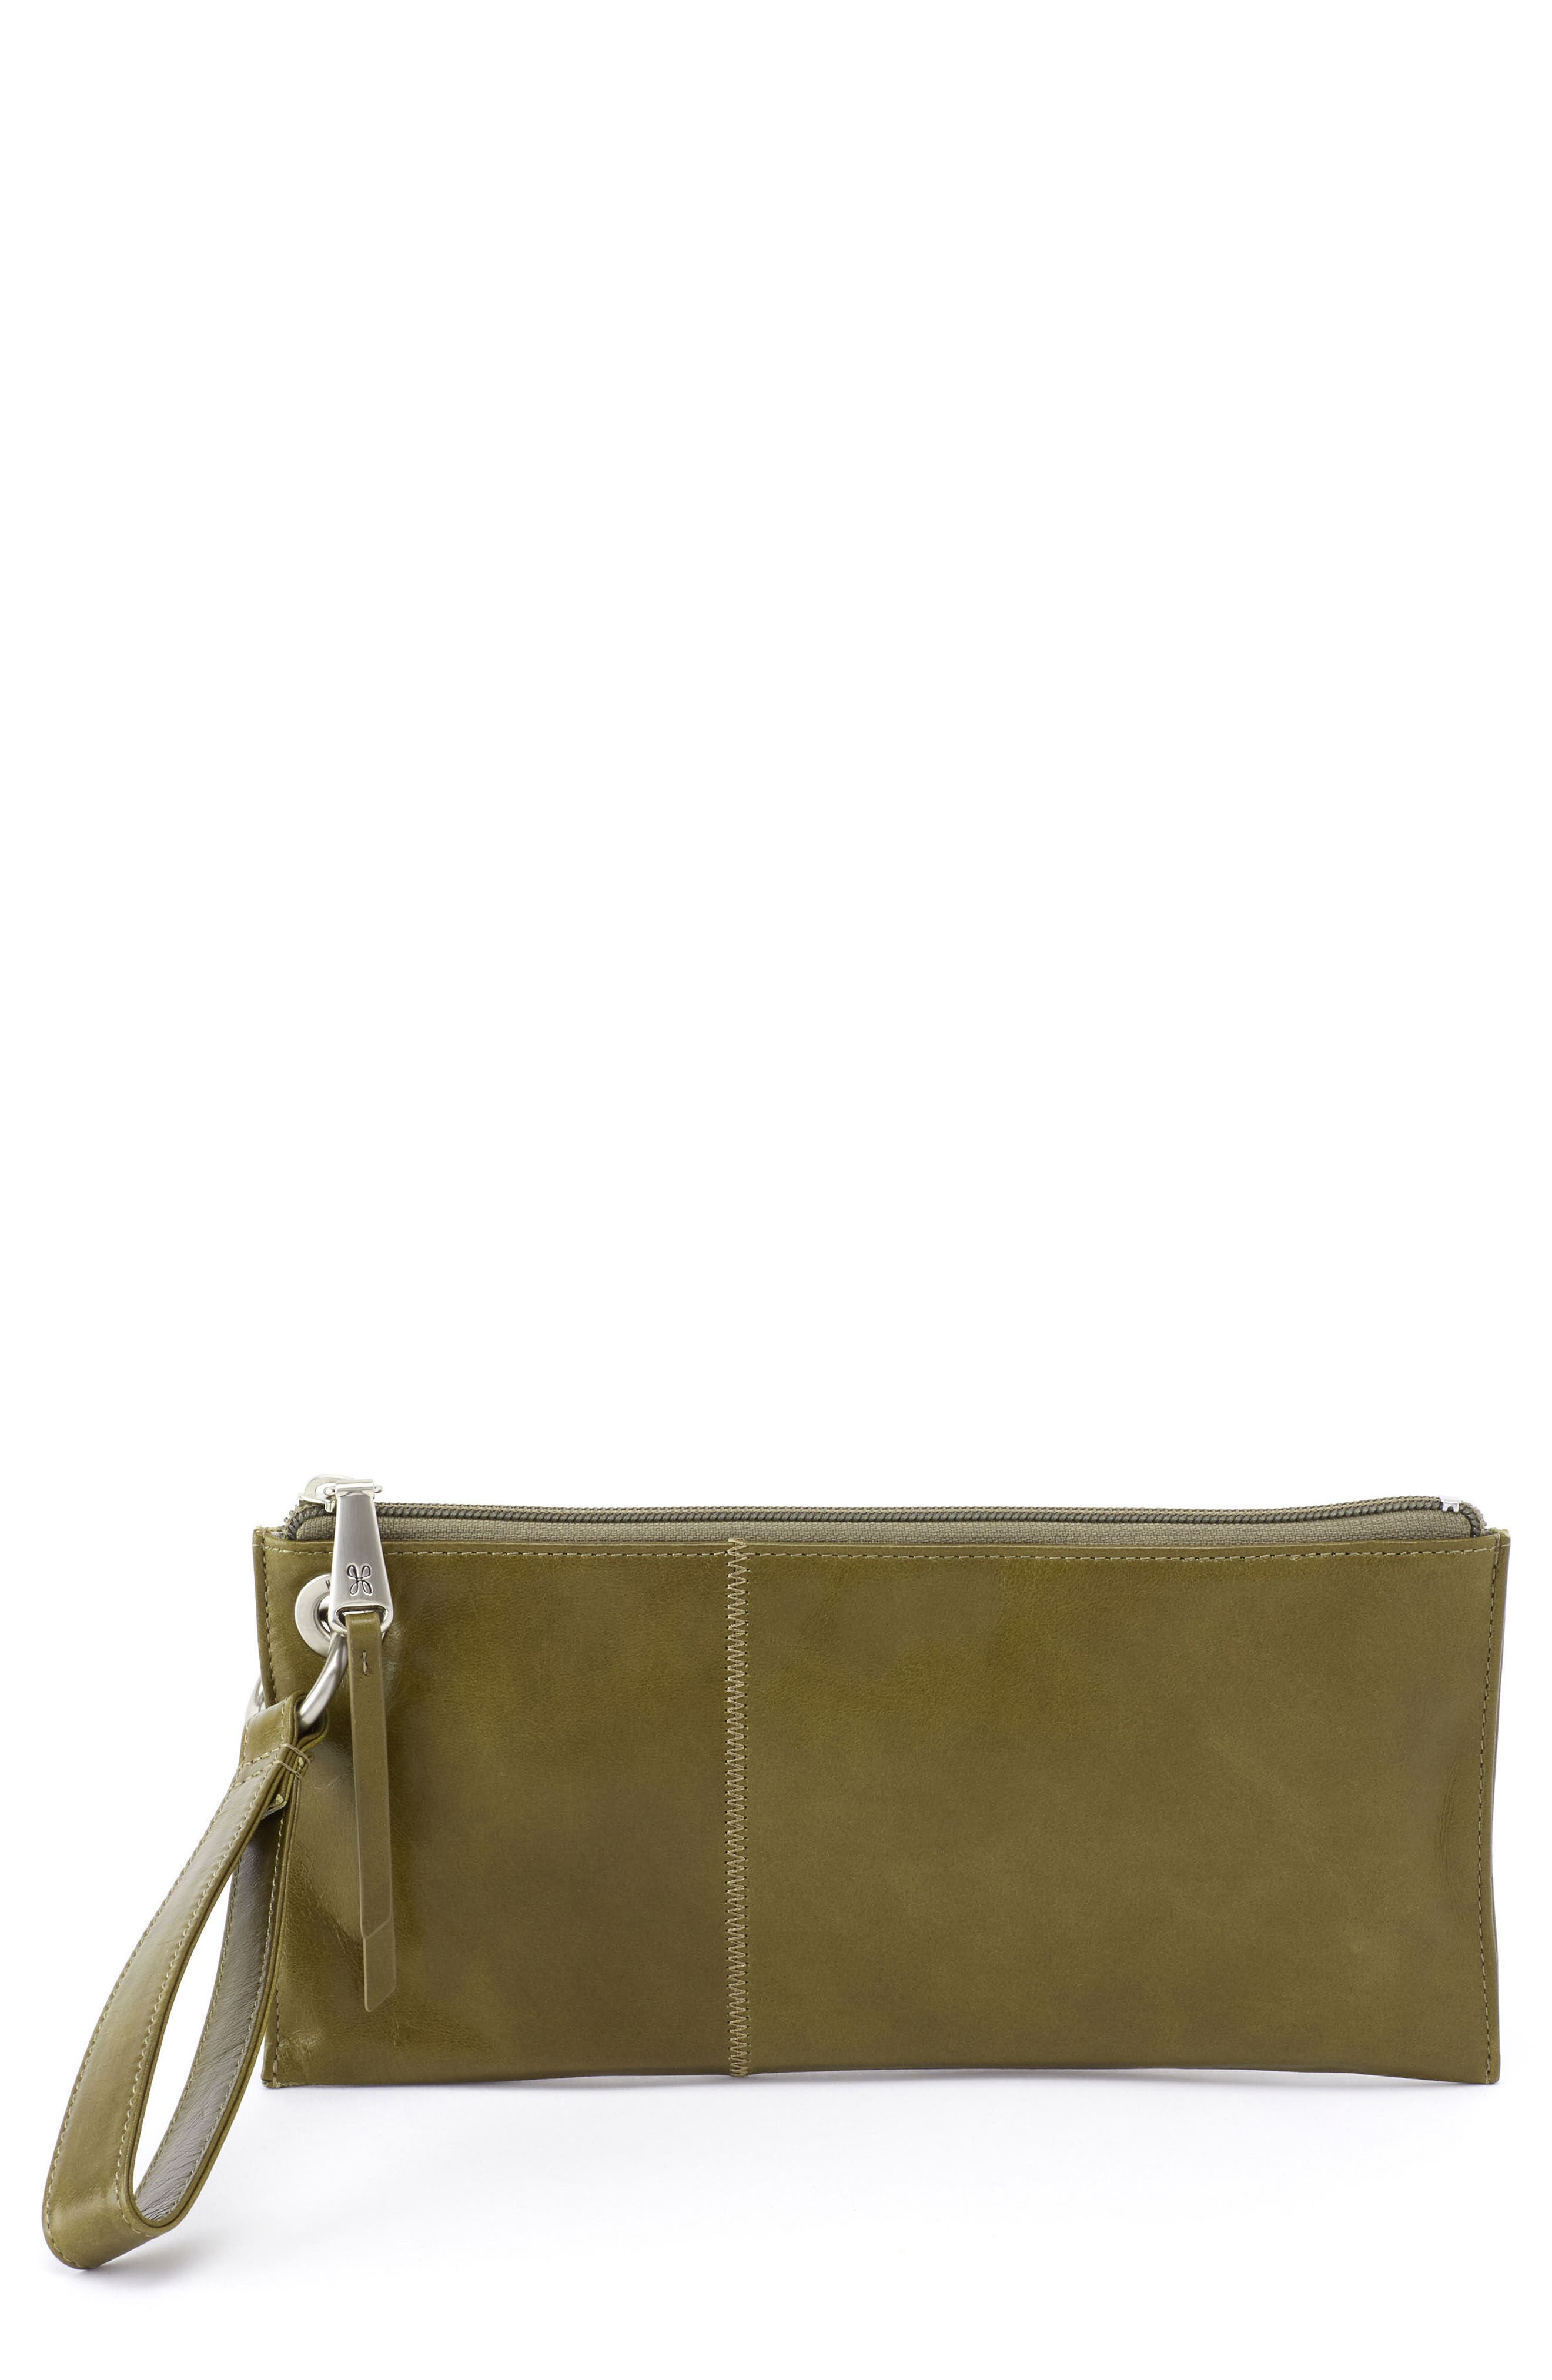 VIDA Leather Statement Clutch - Day Break by VIDA uEHLAdX2m